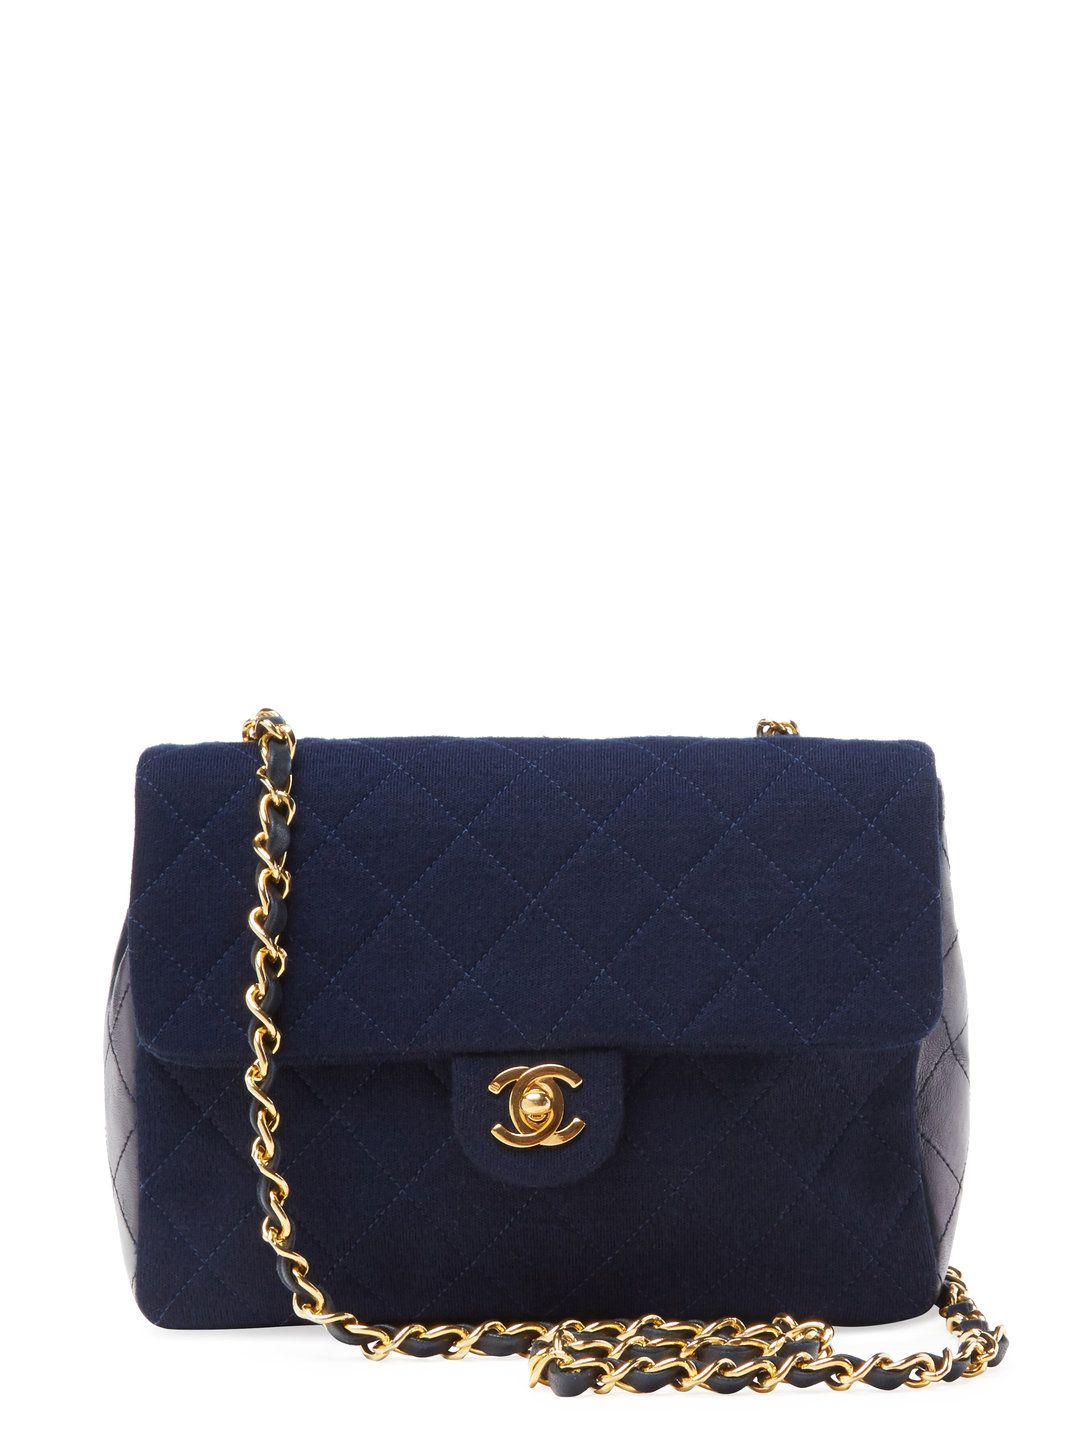 a1abaa71d5c Rare Navy Jersey   Lambskin Classic Flap Small Square by Chanel at Gilt